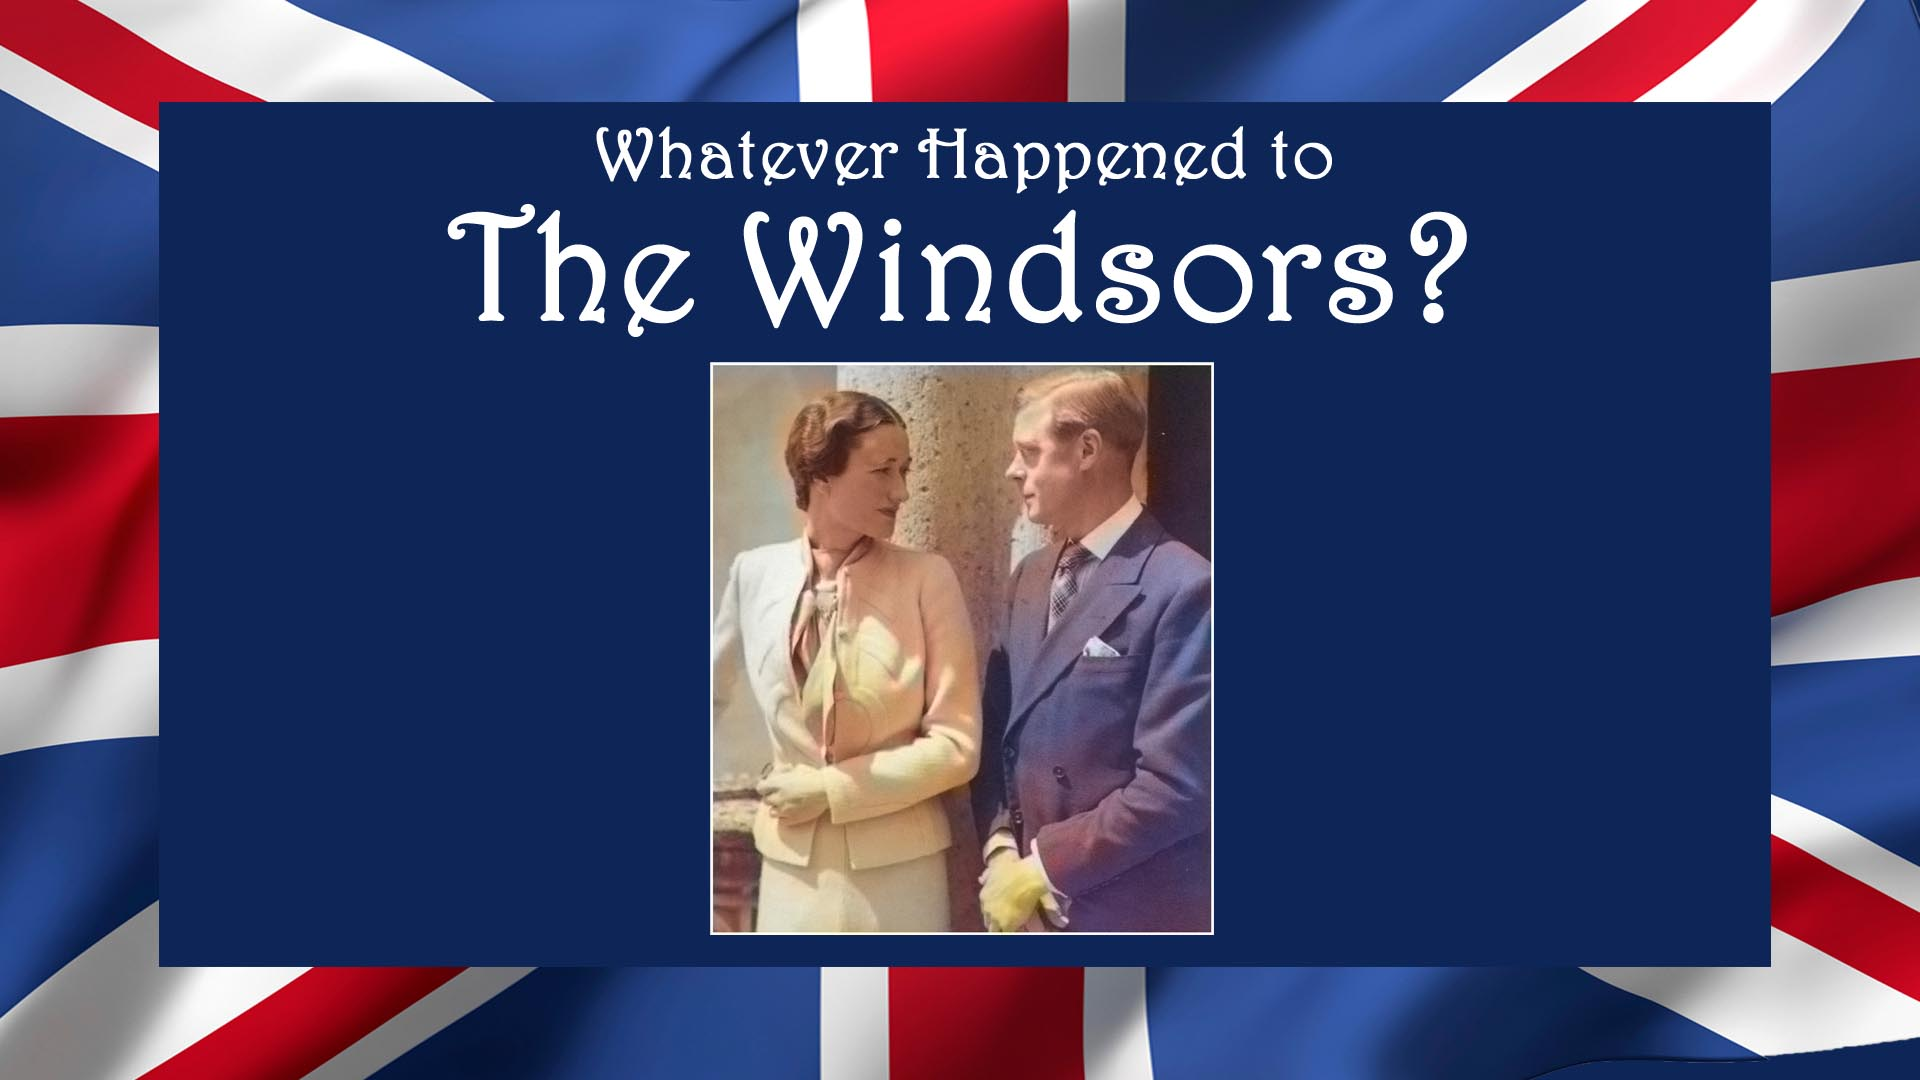 Whatever Happened to The Windsors?